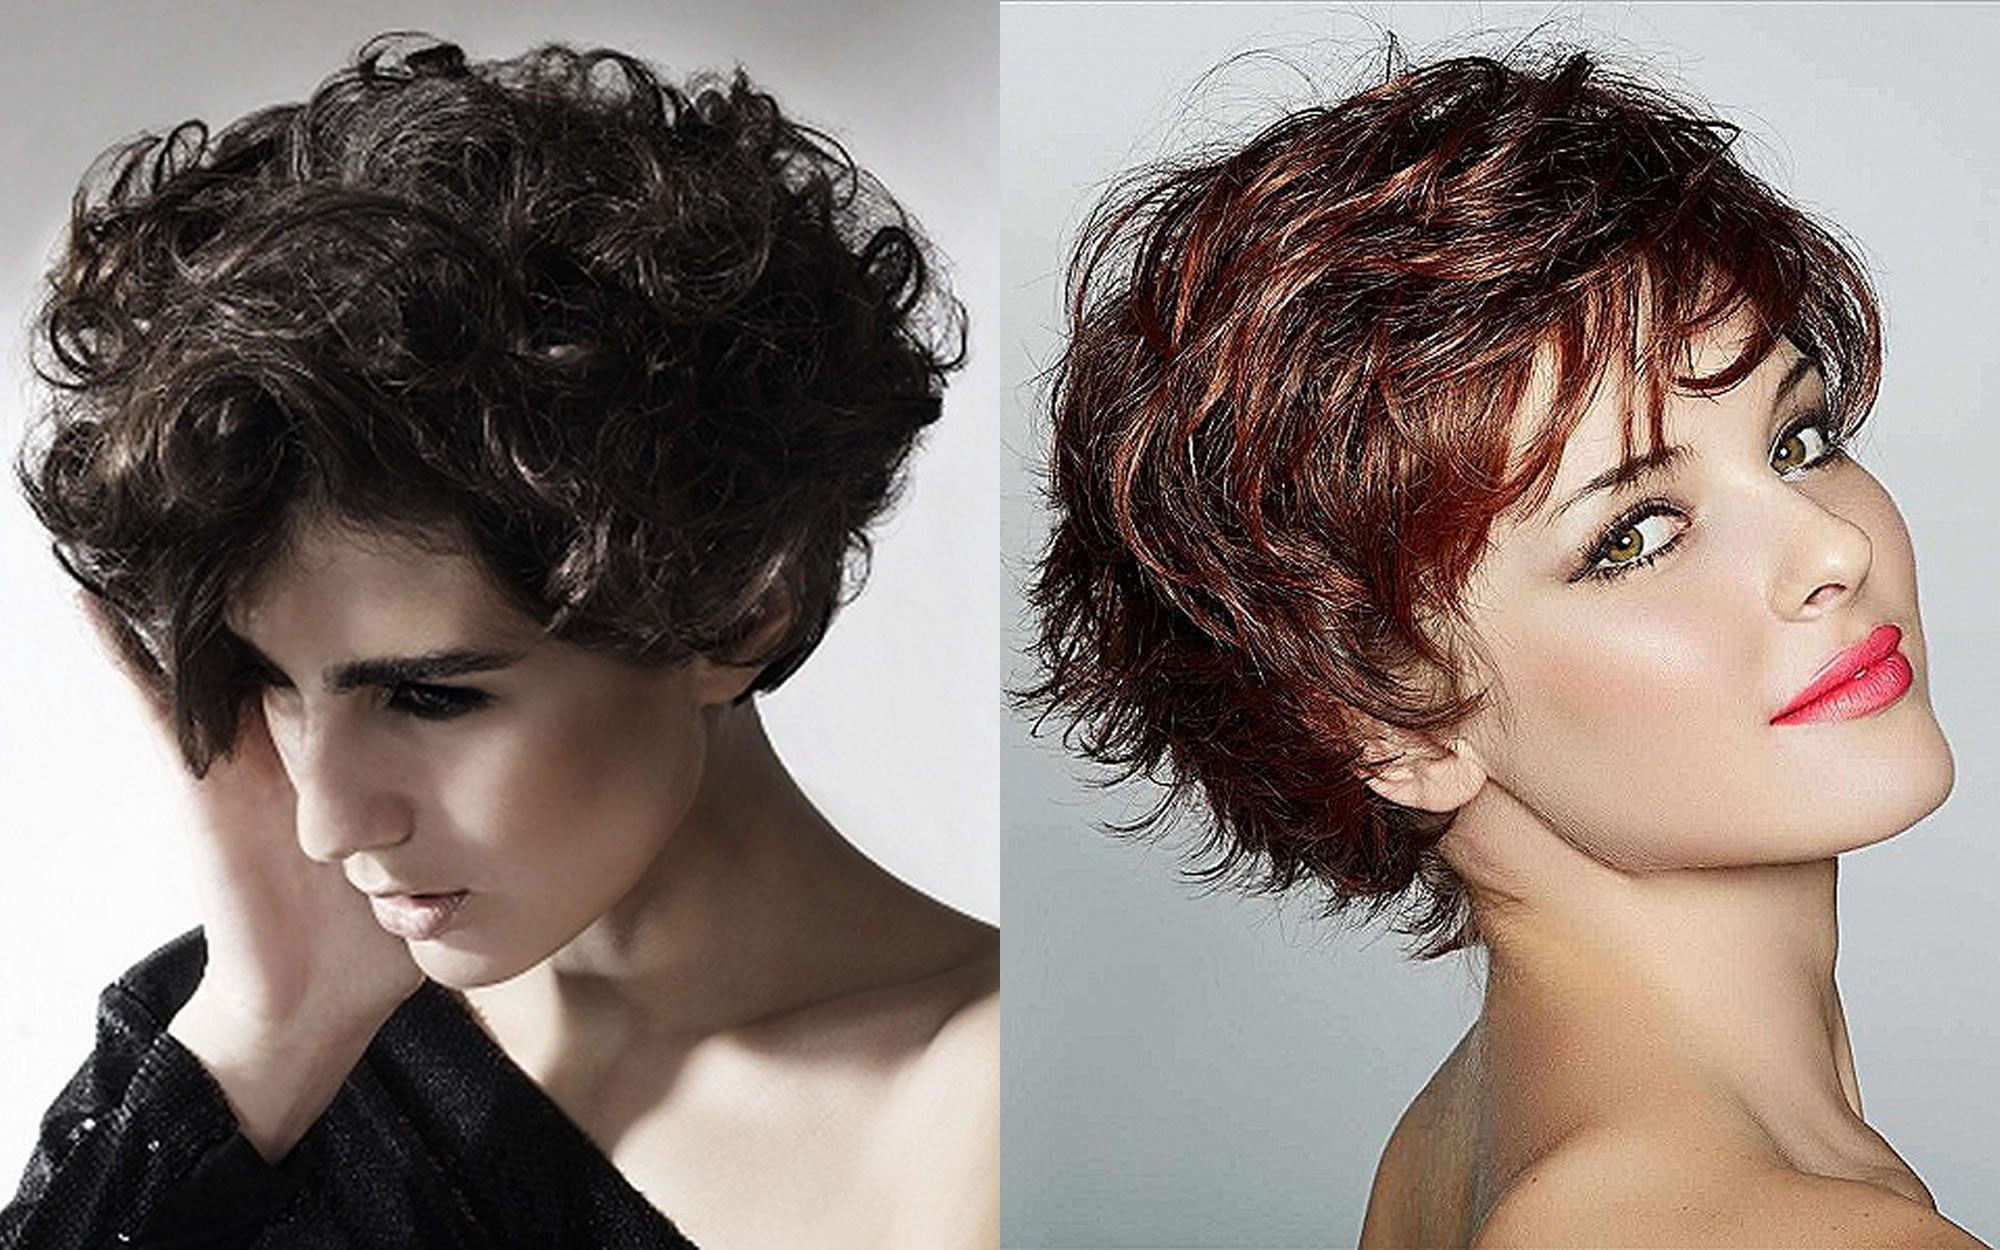 22 Best Curly Short Hairstyles for Women 2018-2019 - Page 3 of 6